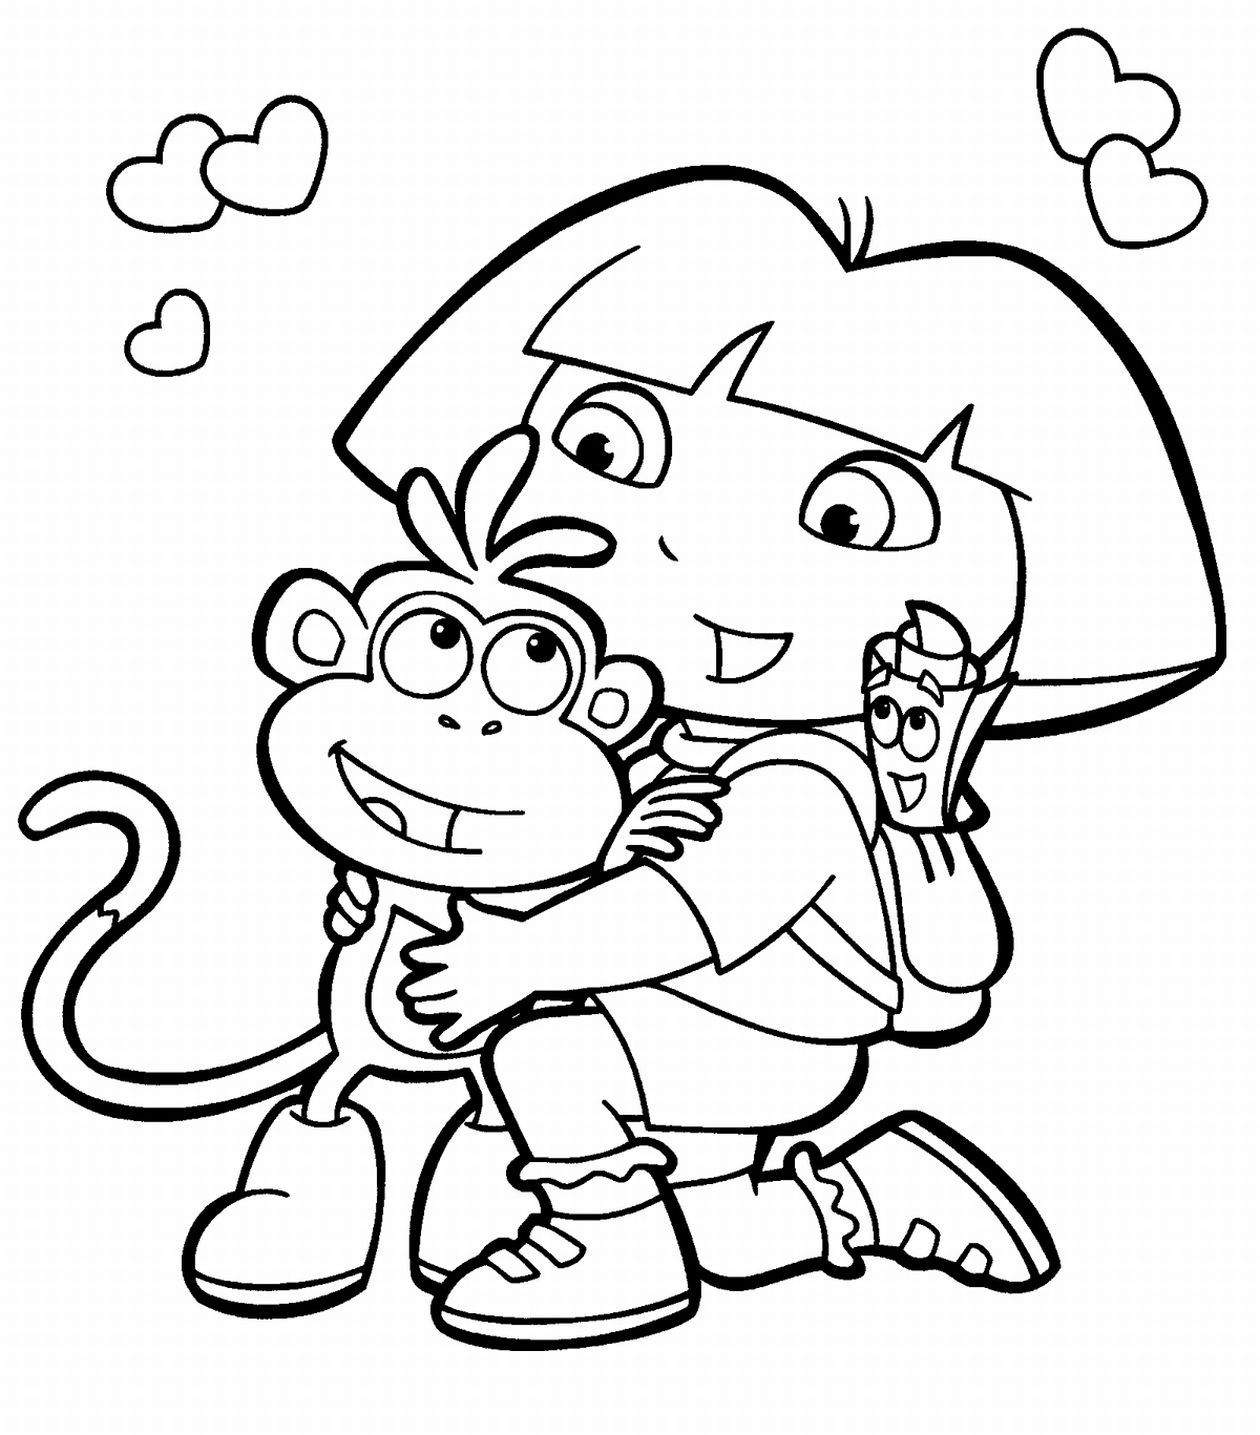 Kids Free Coloring Pages  free printable coloring pages for kids